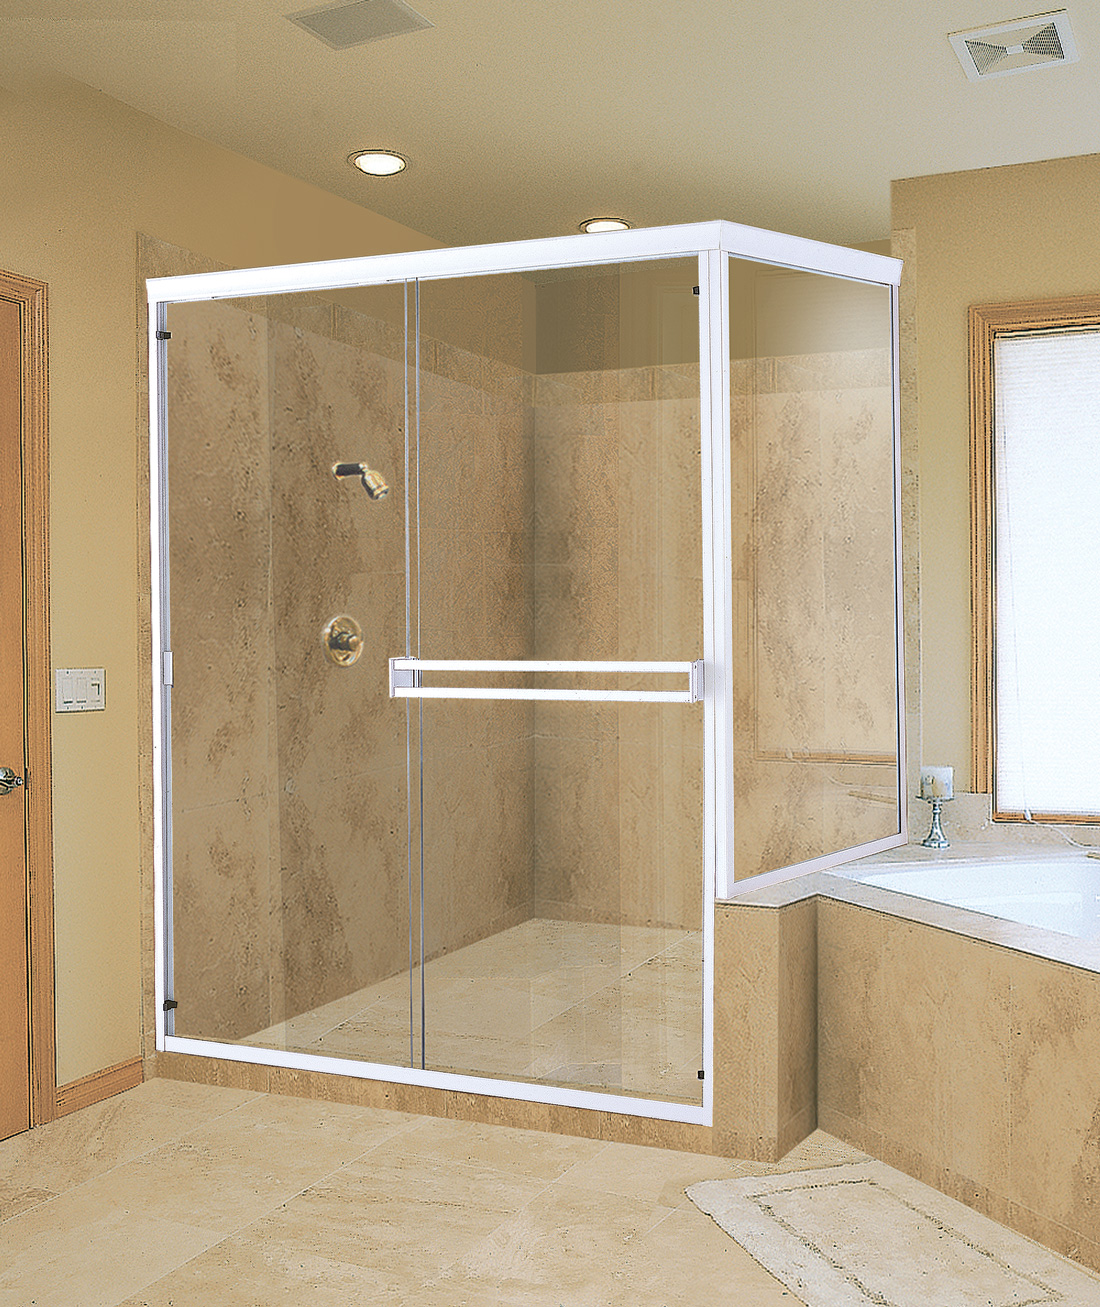 frameless glass shower doors oil rubbed bronze featured top glass shower doors frameless ideas for bathroom decor